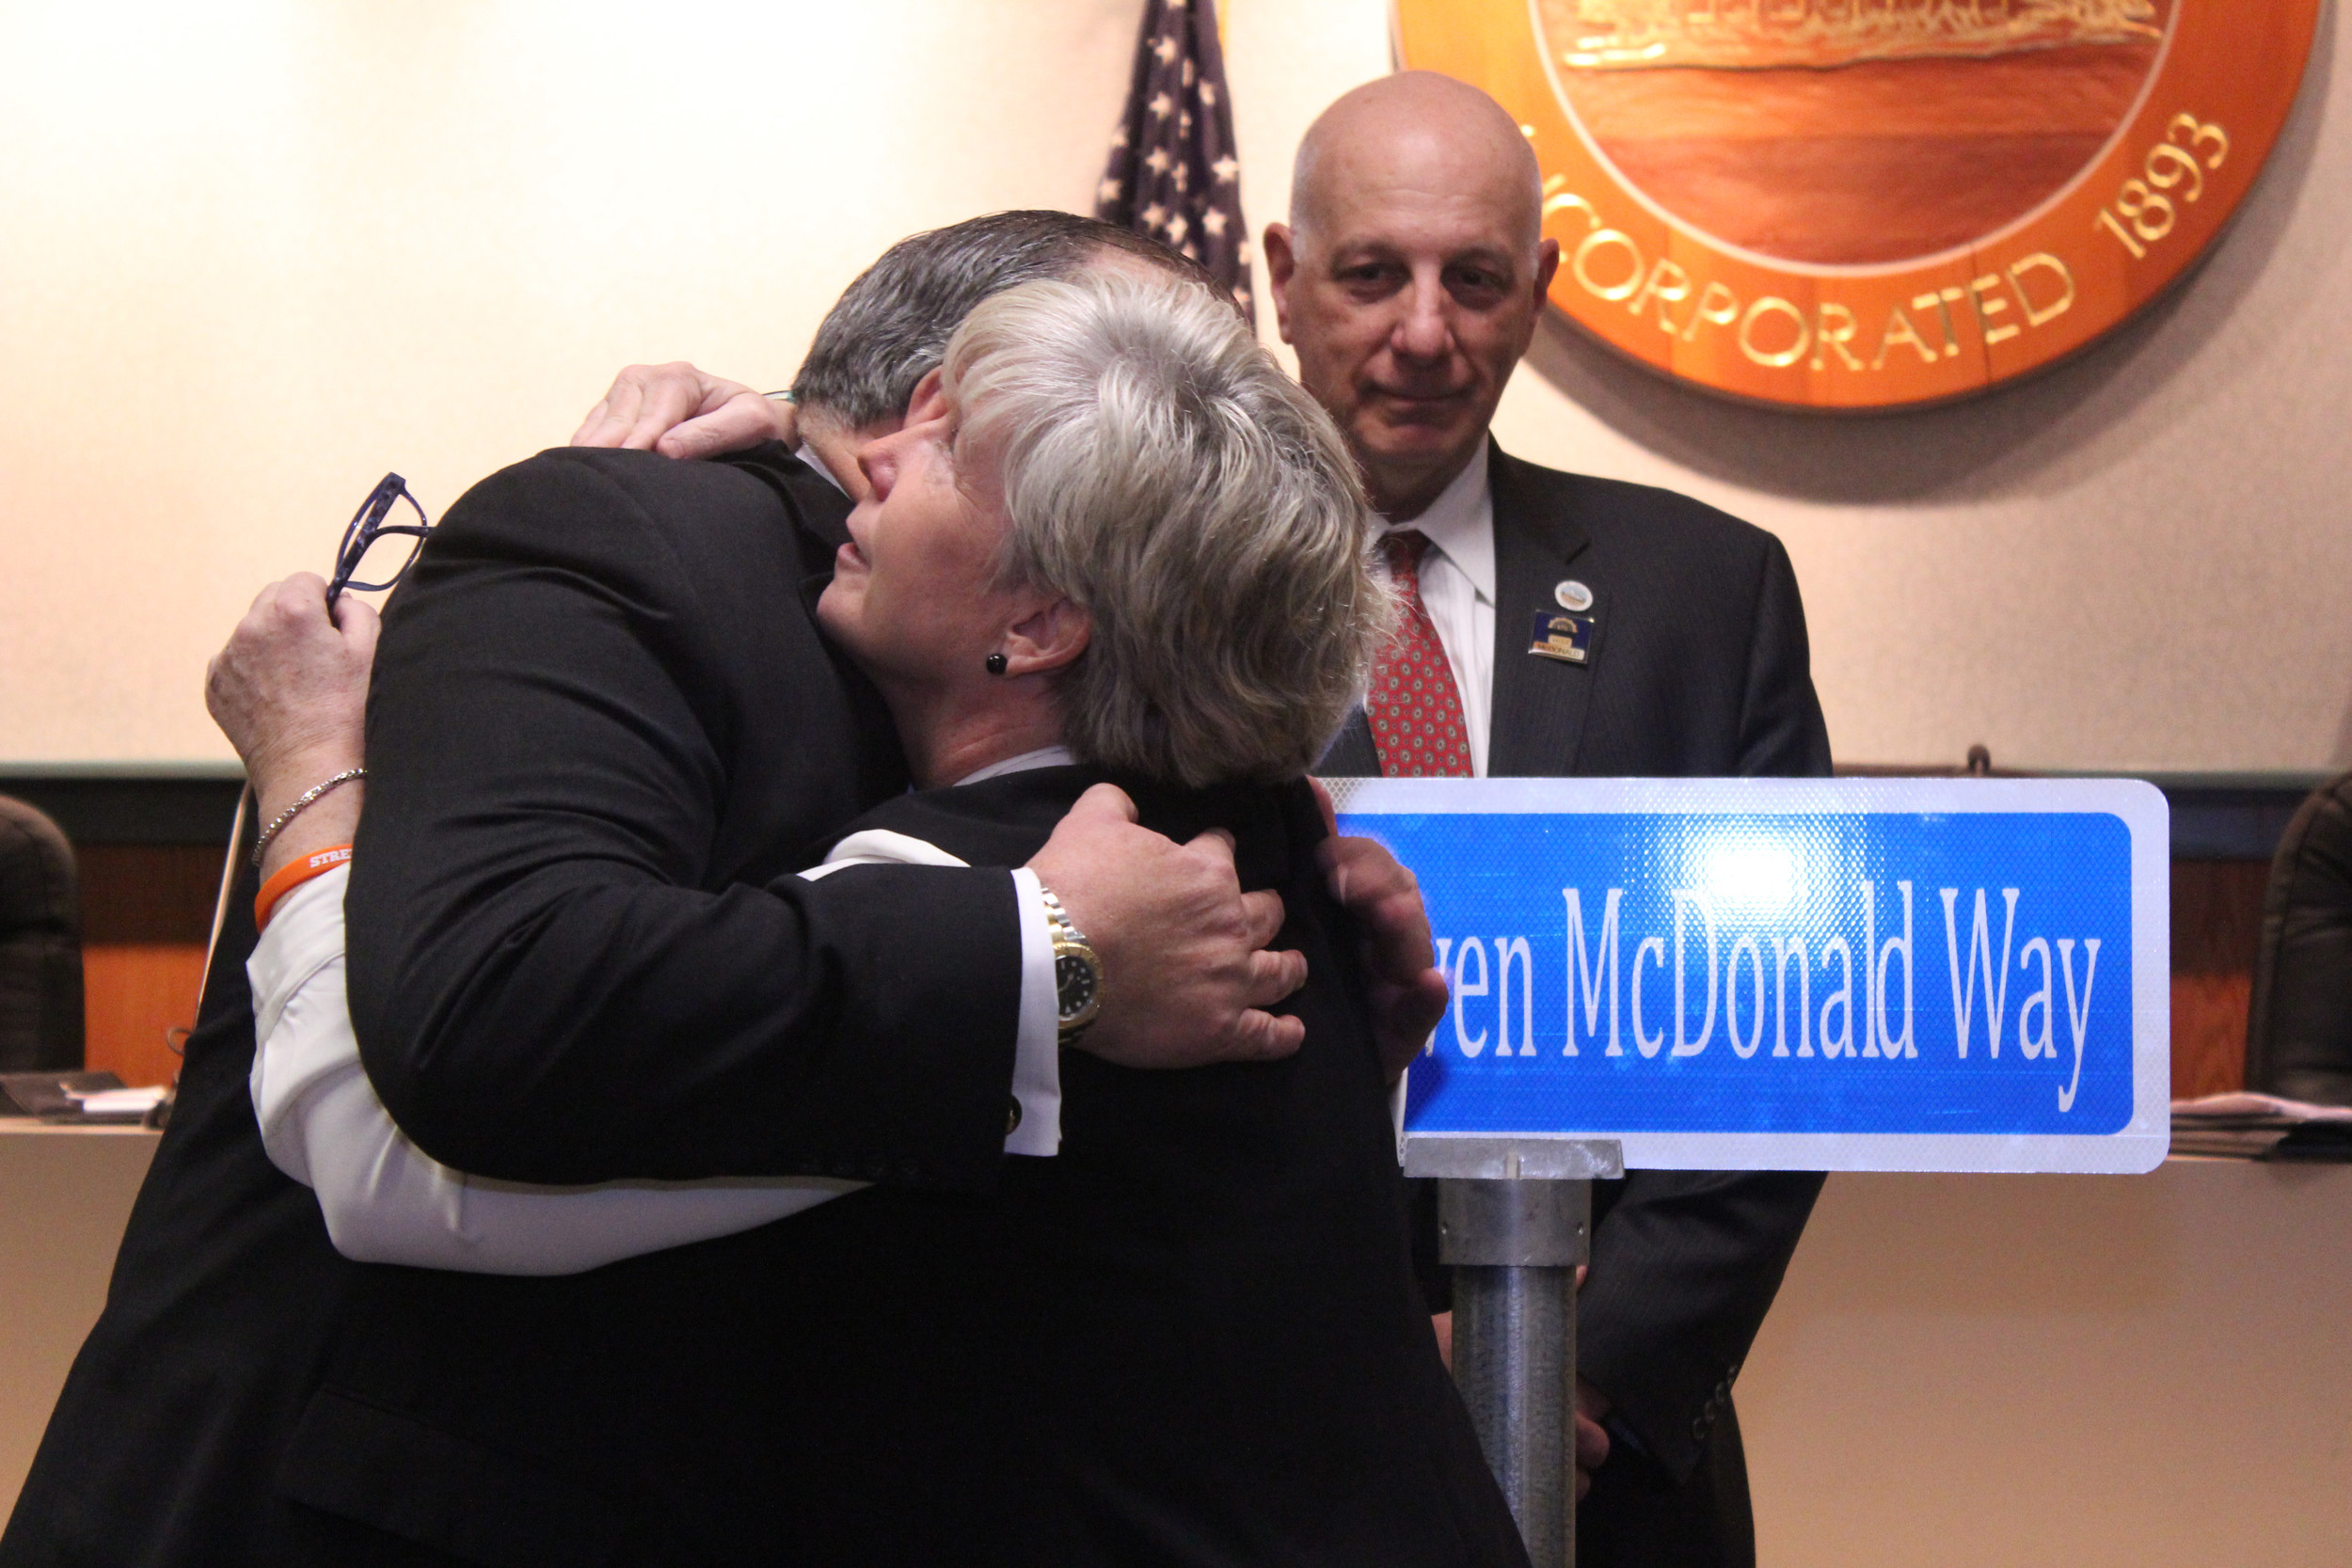 Malverne Mayor Patti Ann McDonald, right, embraced Mayor Francis X. Murray after village officials unveiled a street sign in honor of McDonald's late husband, NYPD Detective Steven McDonald.